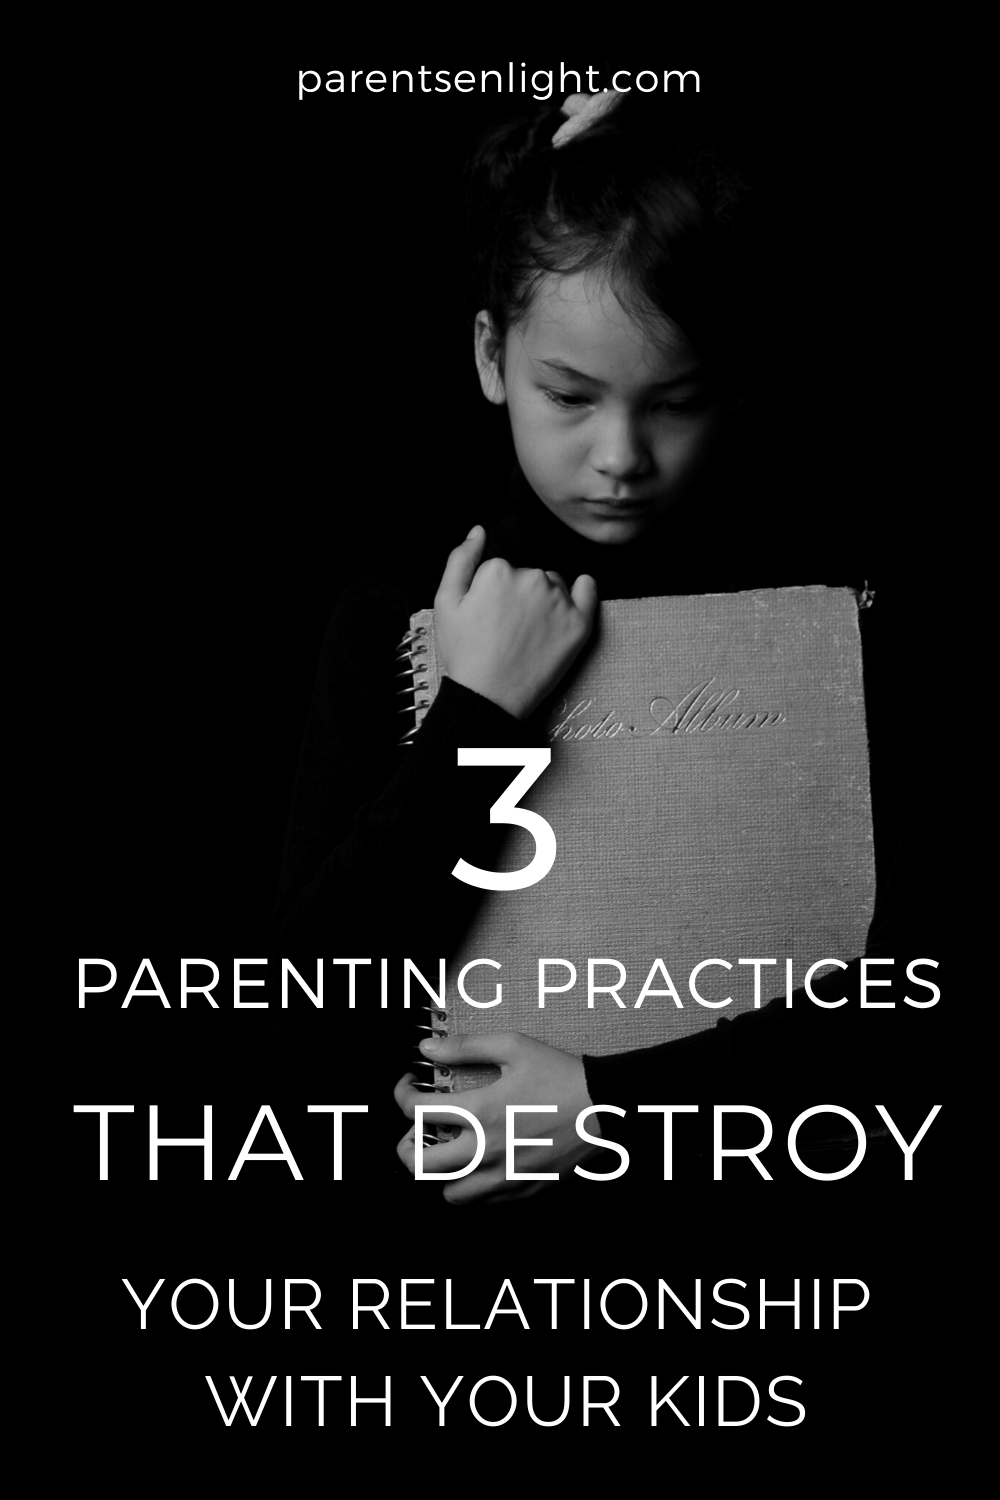 Most of us practice these three practices, without understanding the toll it takes on our relationships with our kids. We fight, we power struggle, we do everything but communicate and cooperate. And this is why... #parenting #parenitngtips #parentinghelp #positiveparenting #peacefulparenting #attachmentparenting #toddlers #nopunishments #tantrums #time-out